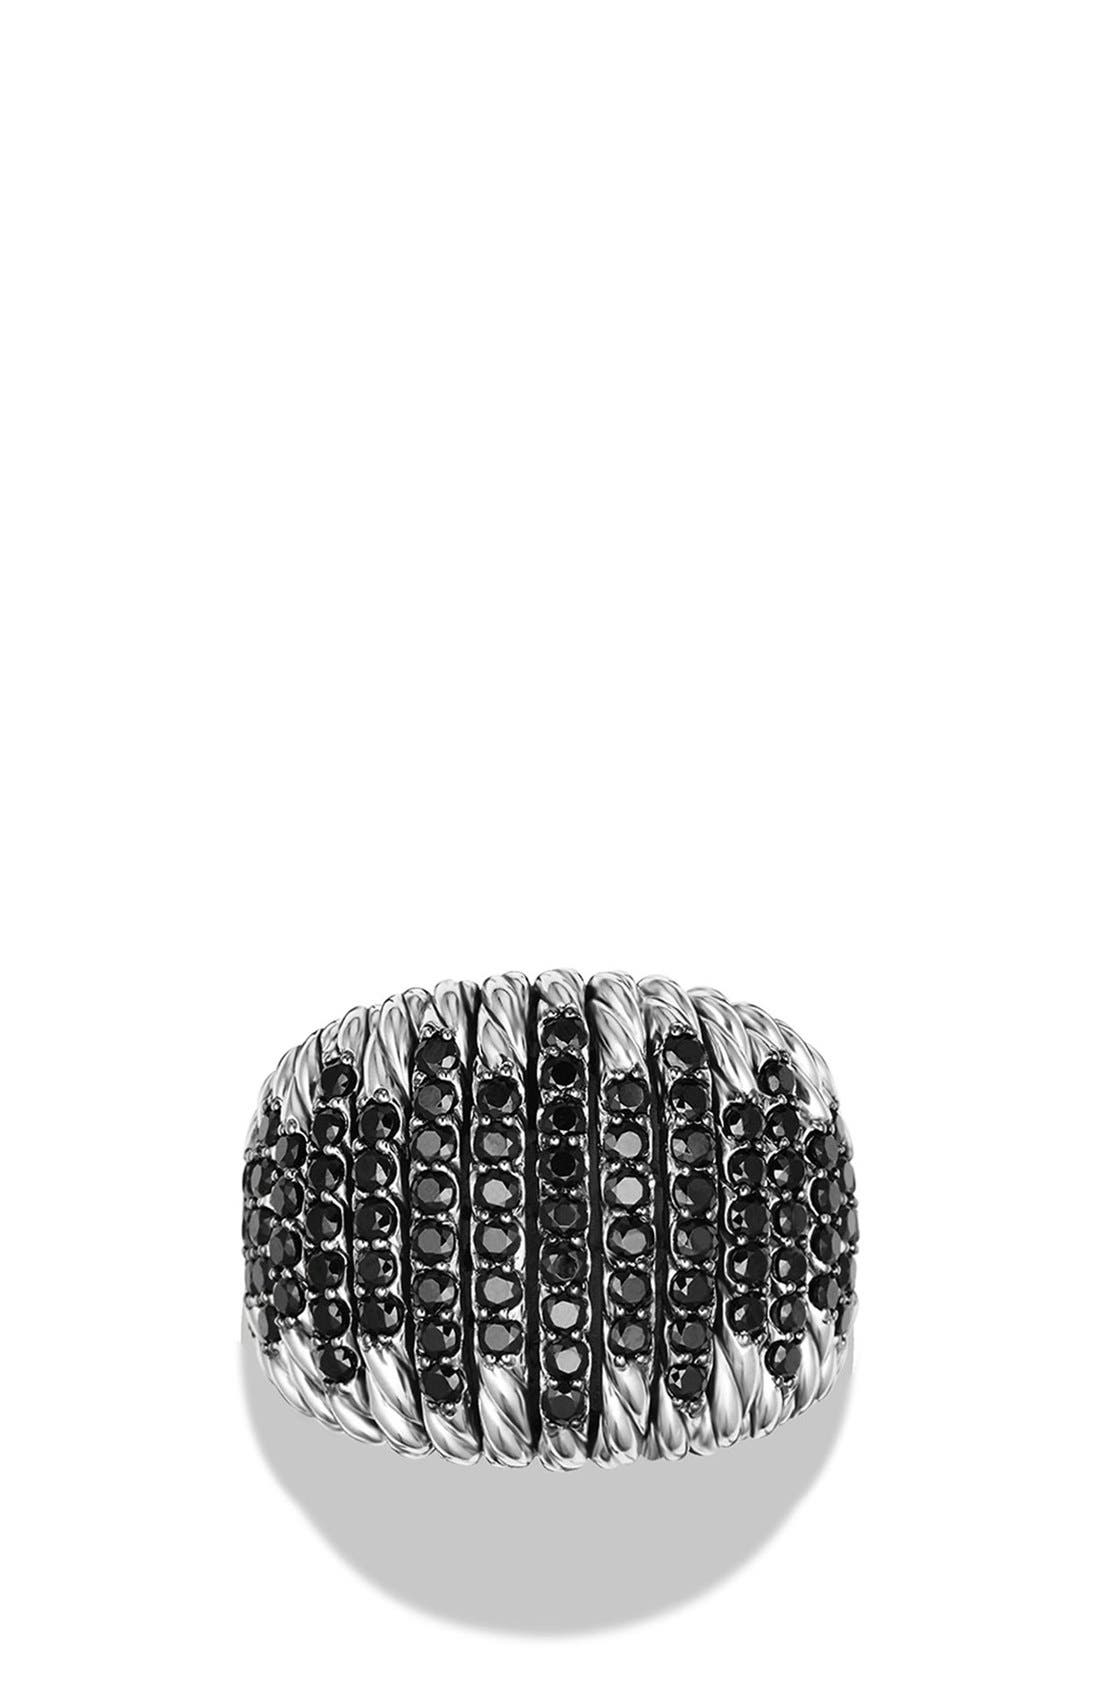 DAVID YURMAN,                             'Tempo' Ring with Spinel,                             Alternate thumbnail 3, color,                             BLACK SPINEL